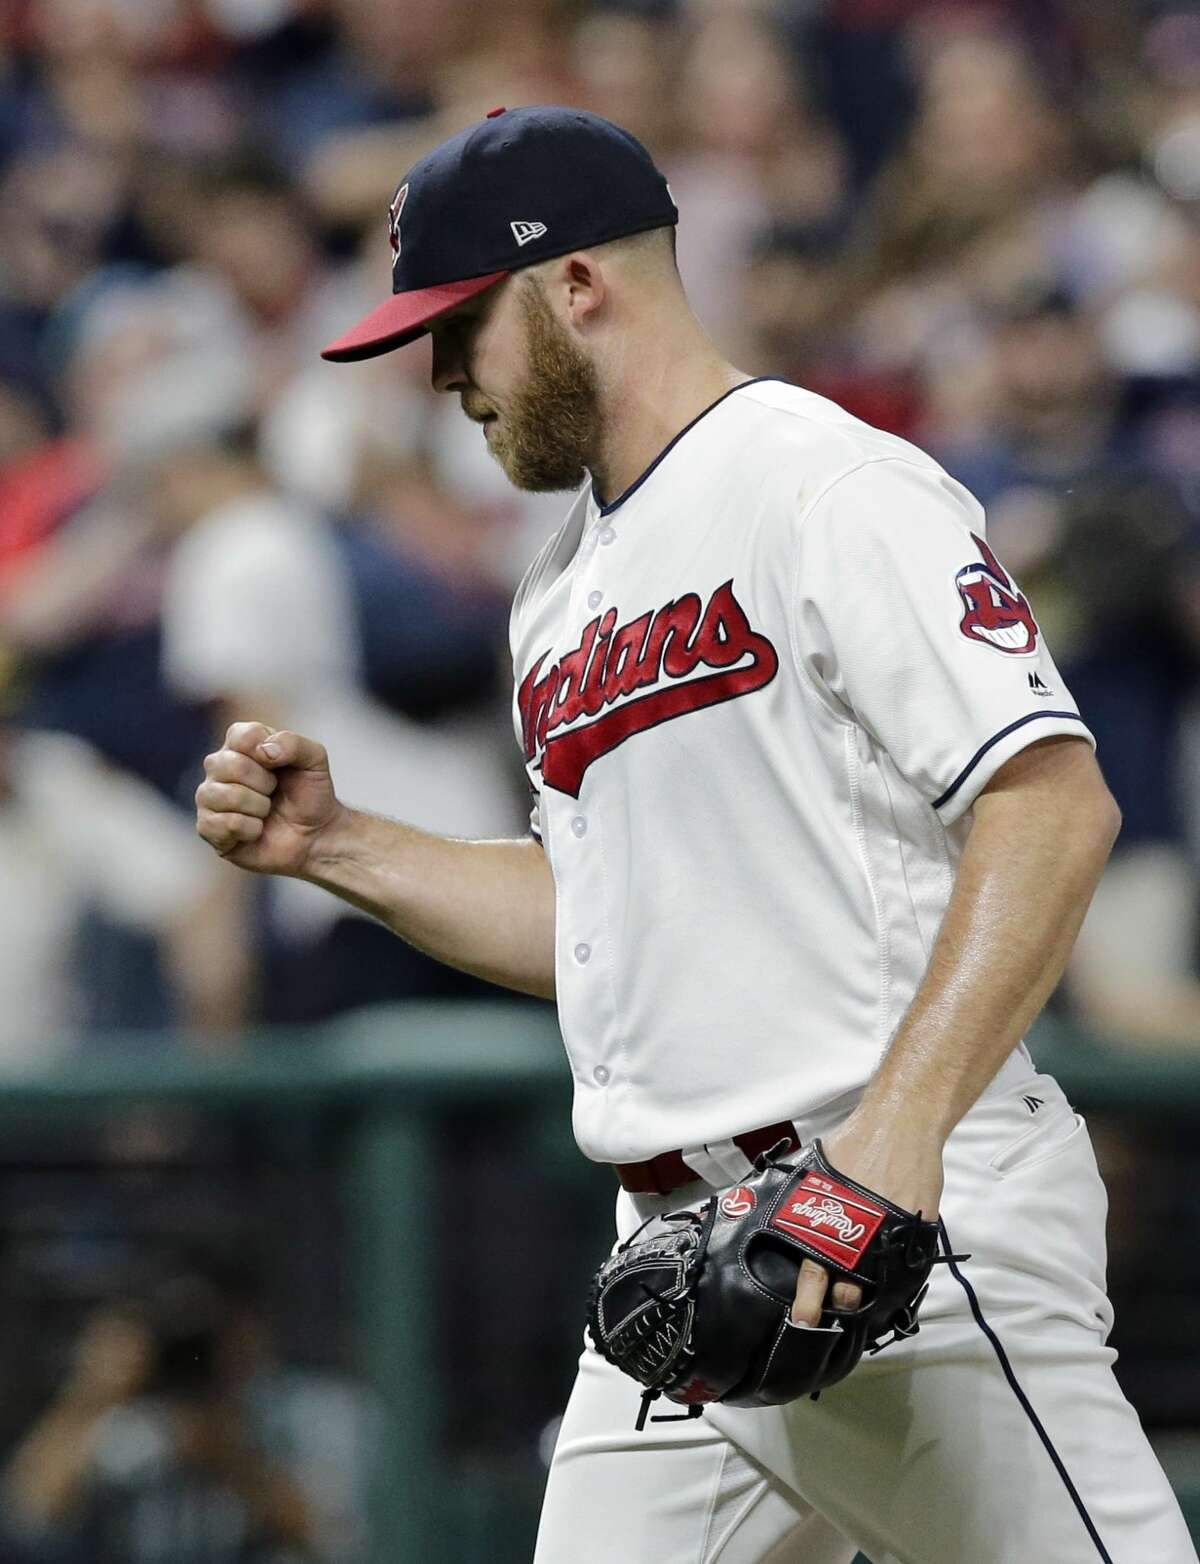 Cleveland Indians relief pitcher Cody Allen pumps his fist after the Indians defeated the Houston Astros 7-6 in a baseball game, Wednesday, April 26, 2017, in Cleveland. (AP Photo/Tony Dejak)